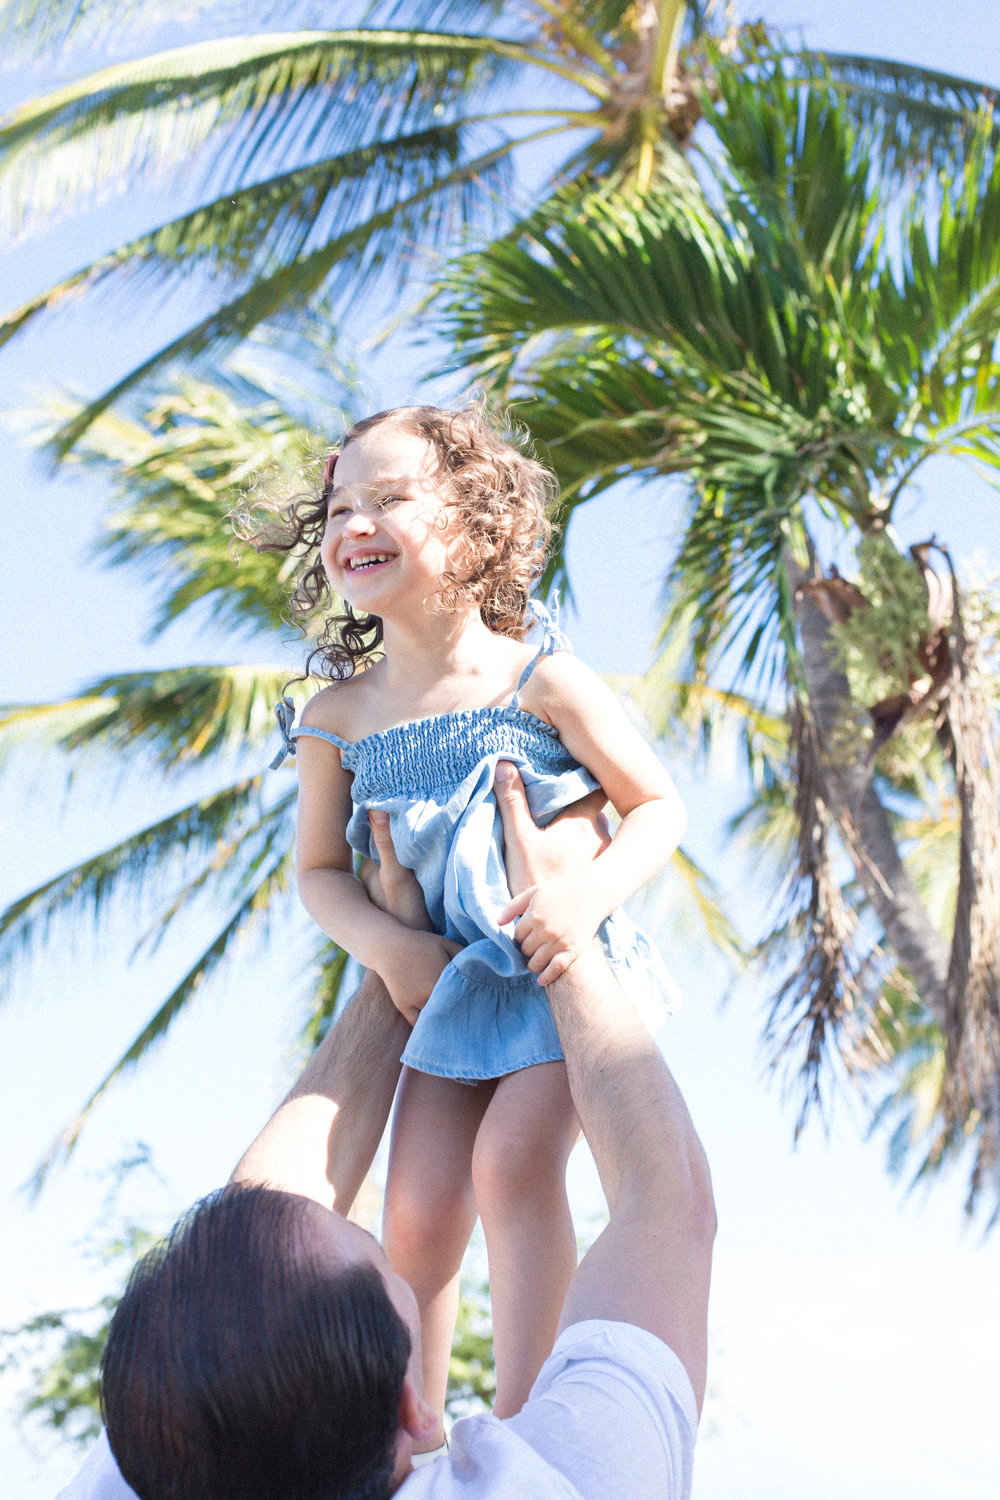 mauifamilyphotographer-dad-daughter-fun-maui-lahaina